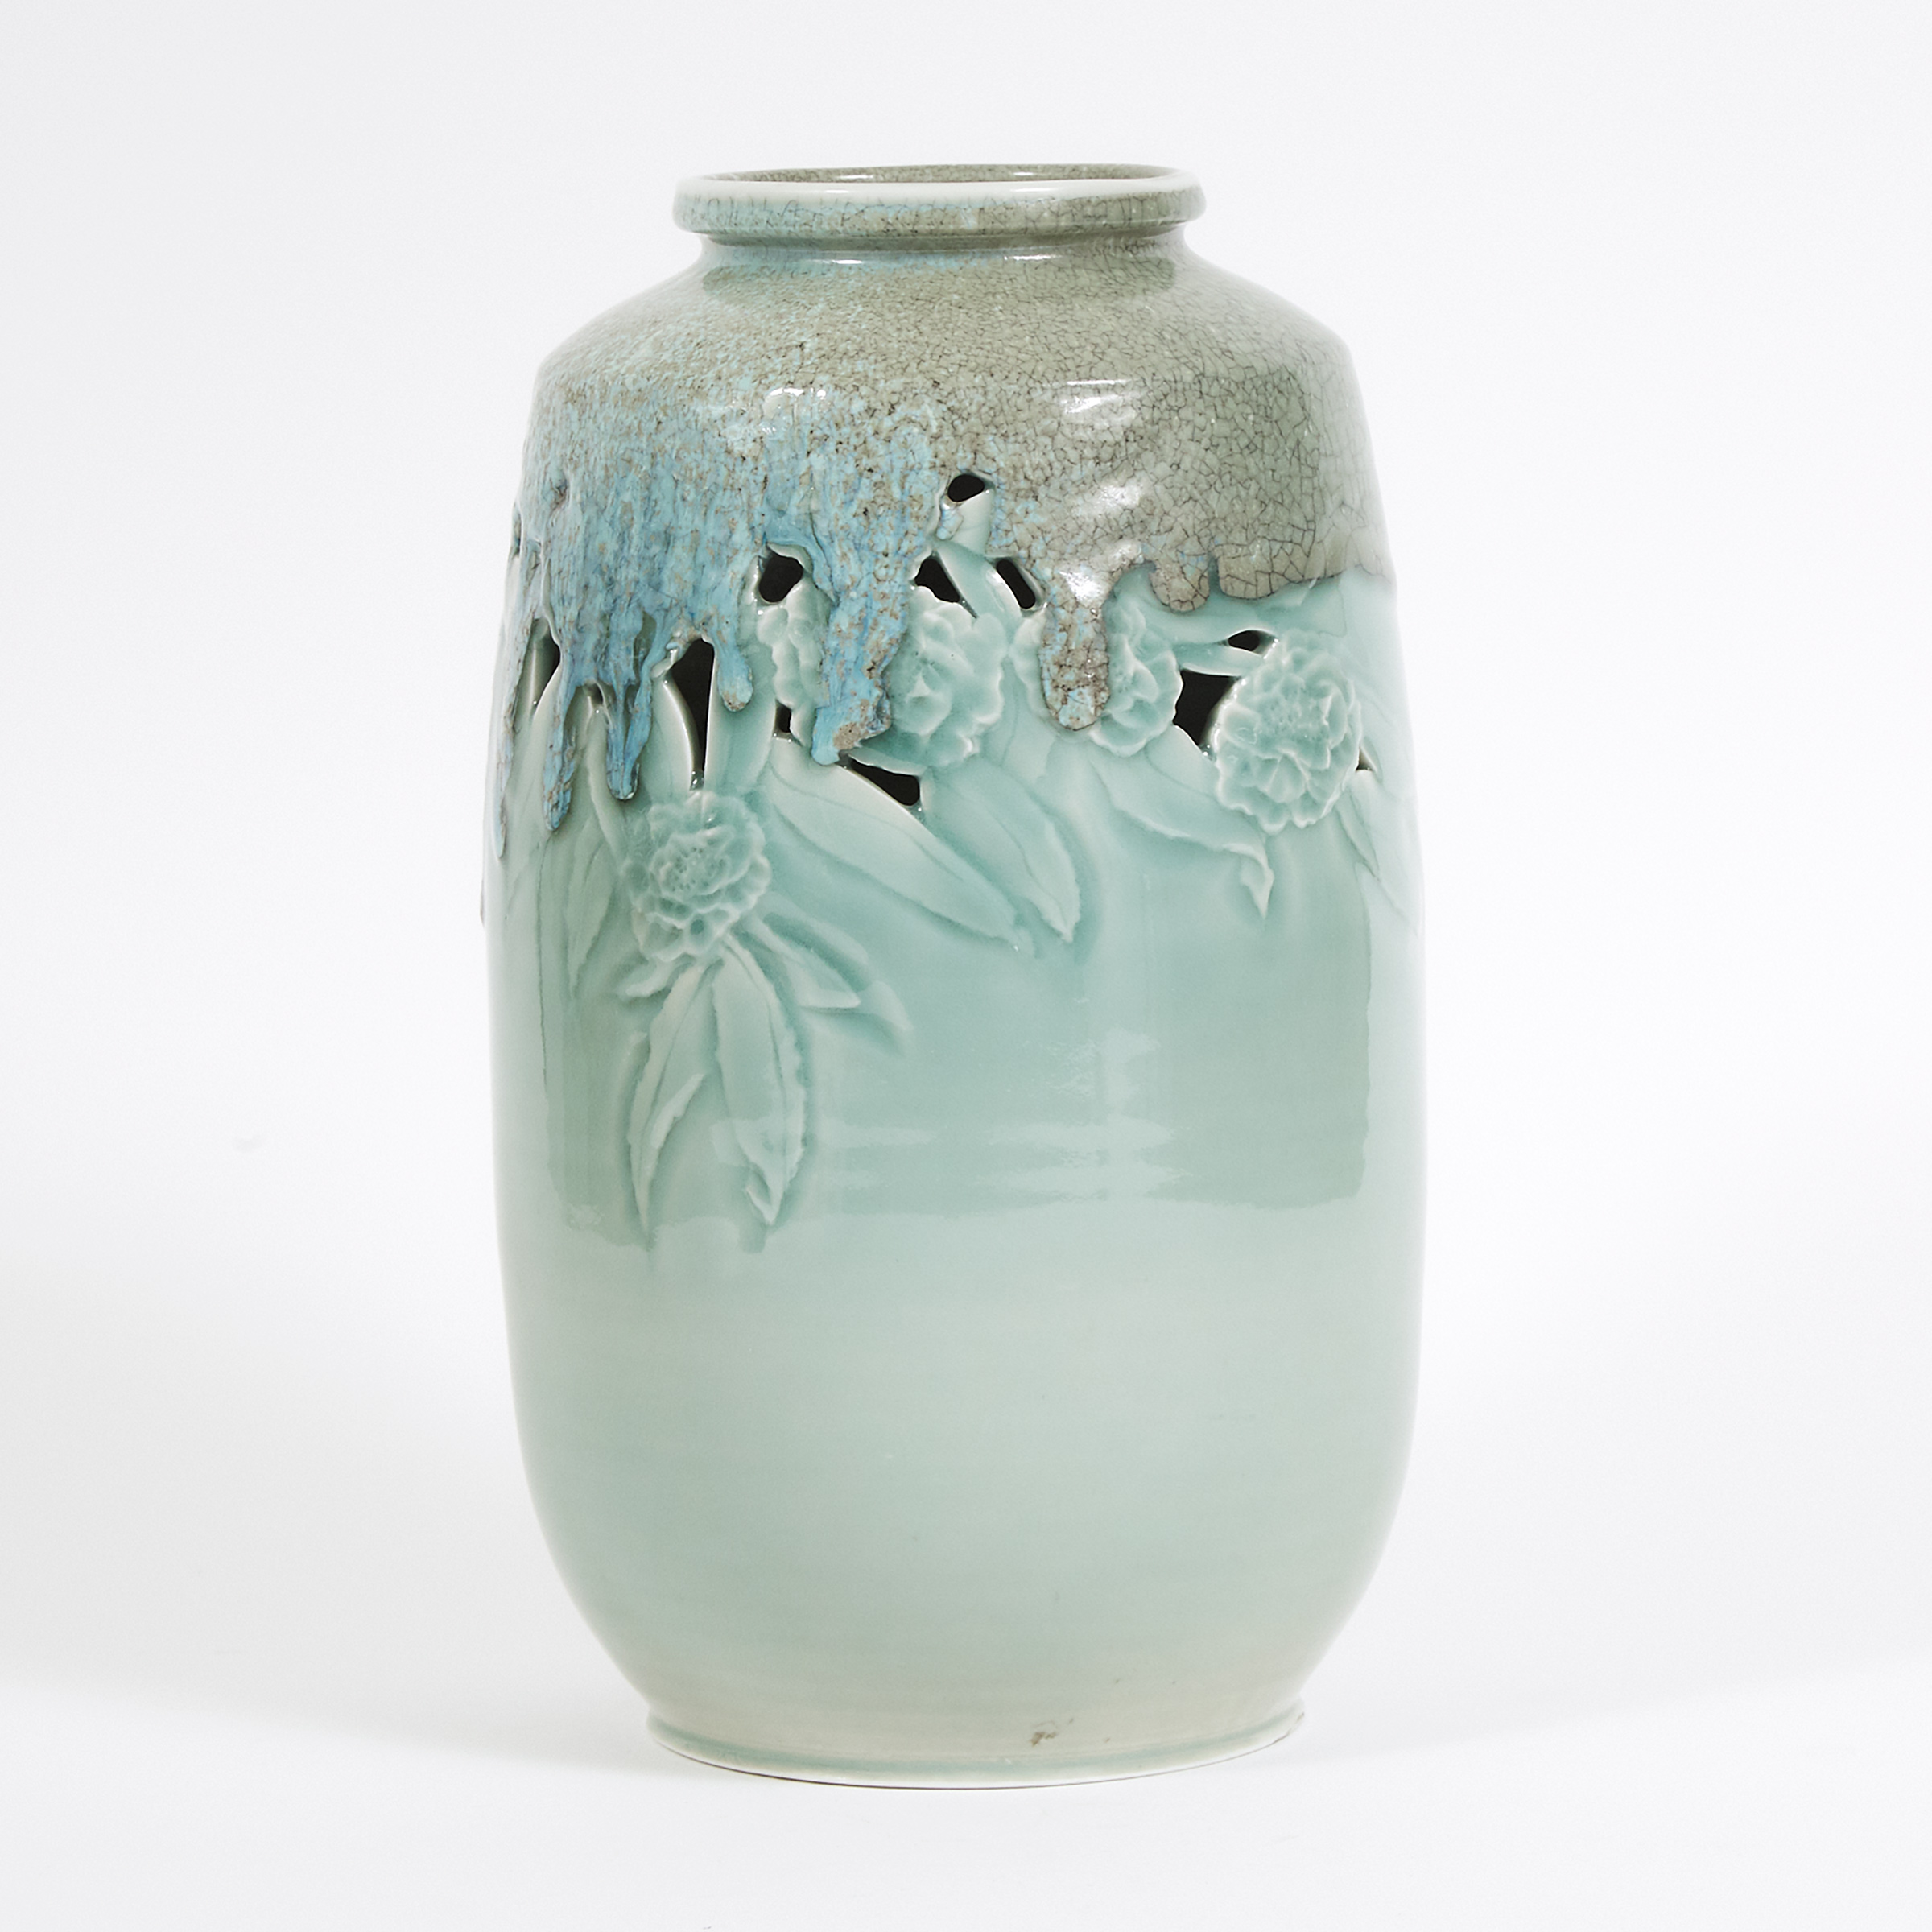 Harlan House (Canadian, b.1943), Pierced and Moulded Celadon Glazed Vase, 1993